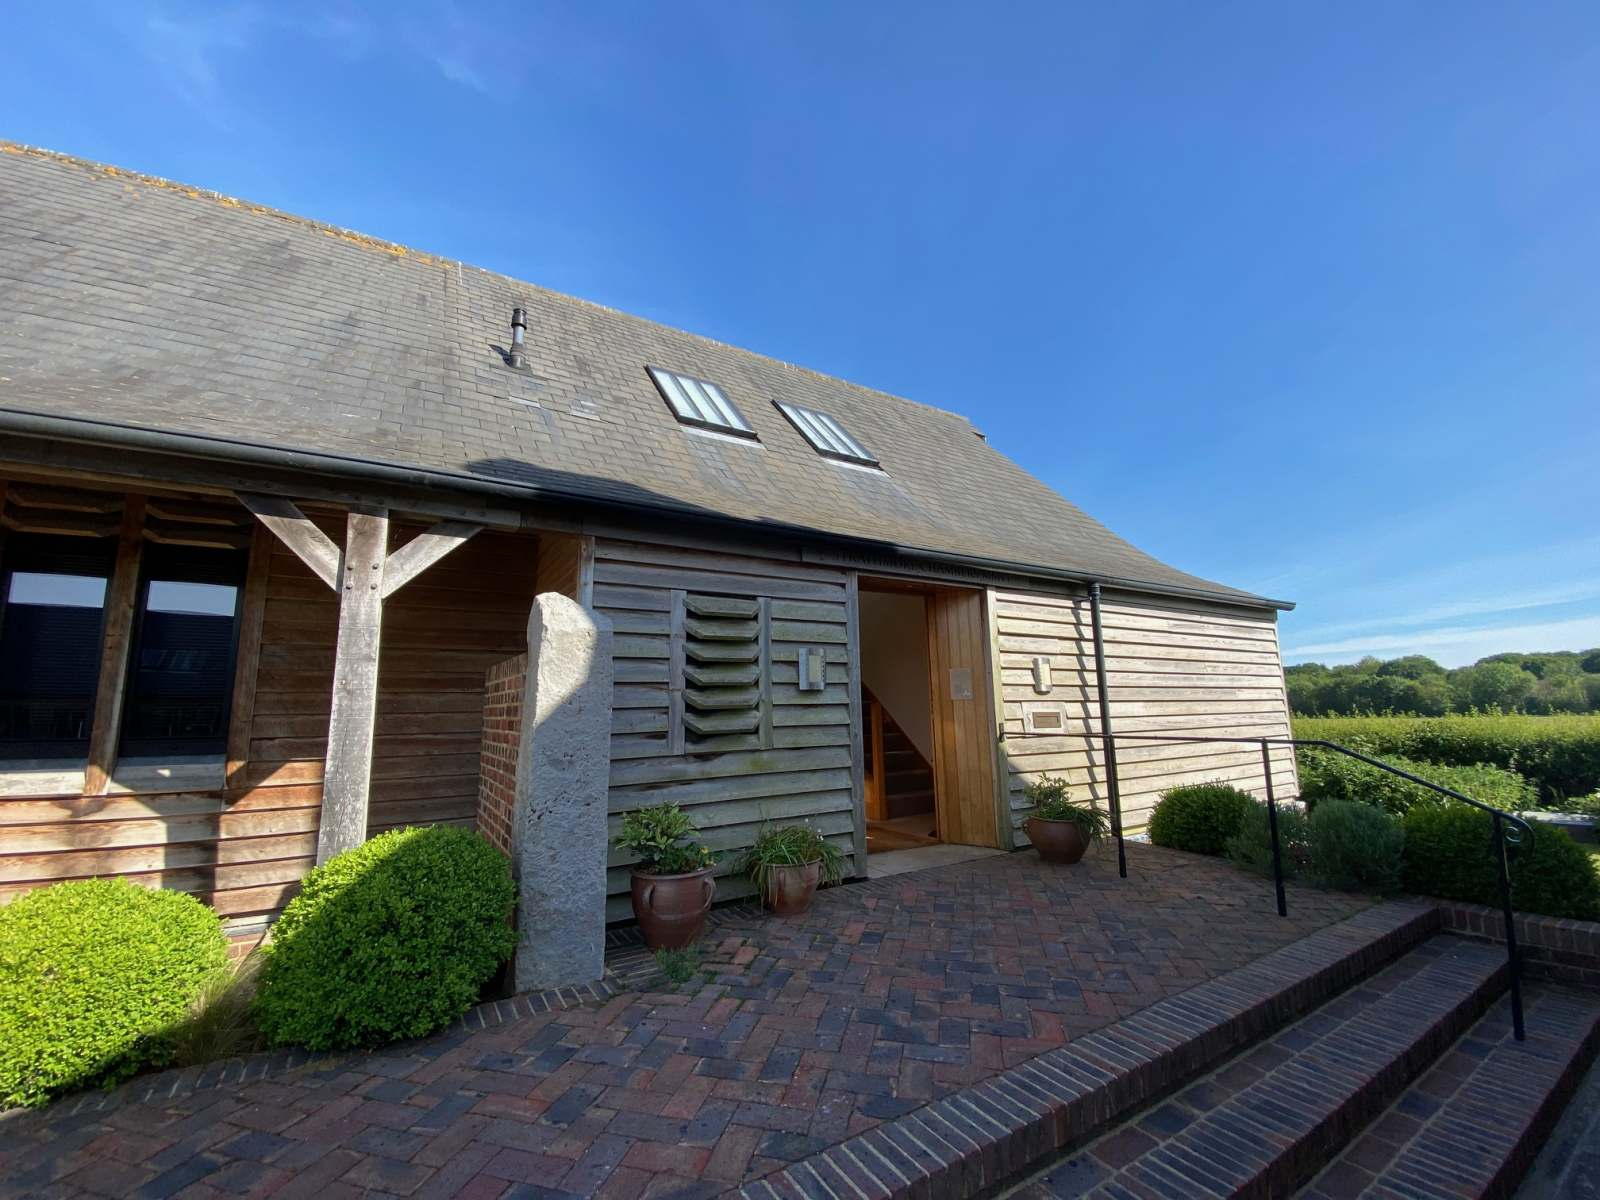 Unit 5 Chanctonfold Estate, Horsham Road, Steyning, West Sussex To Let